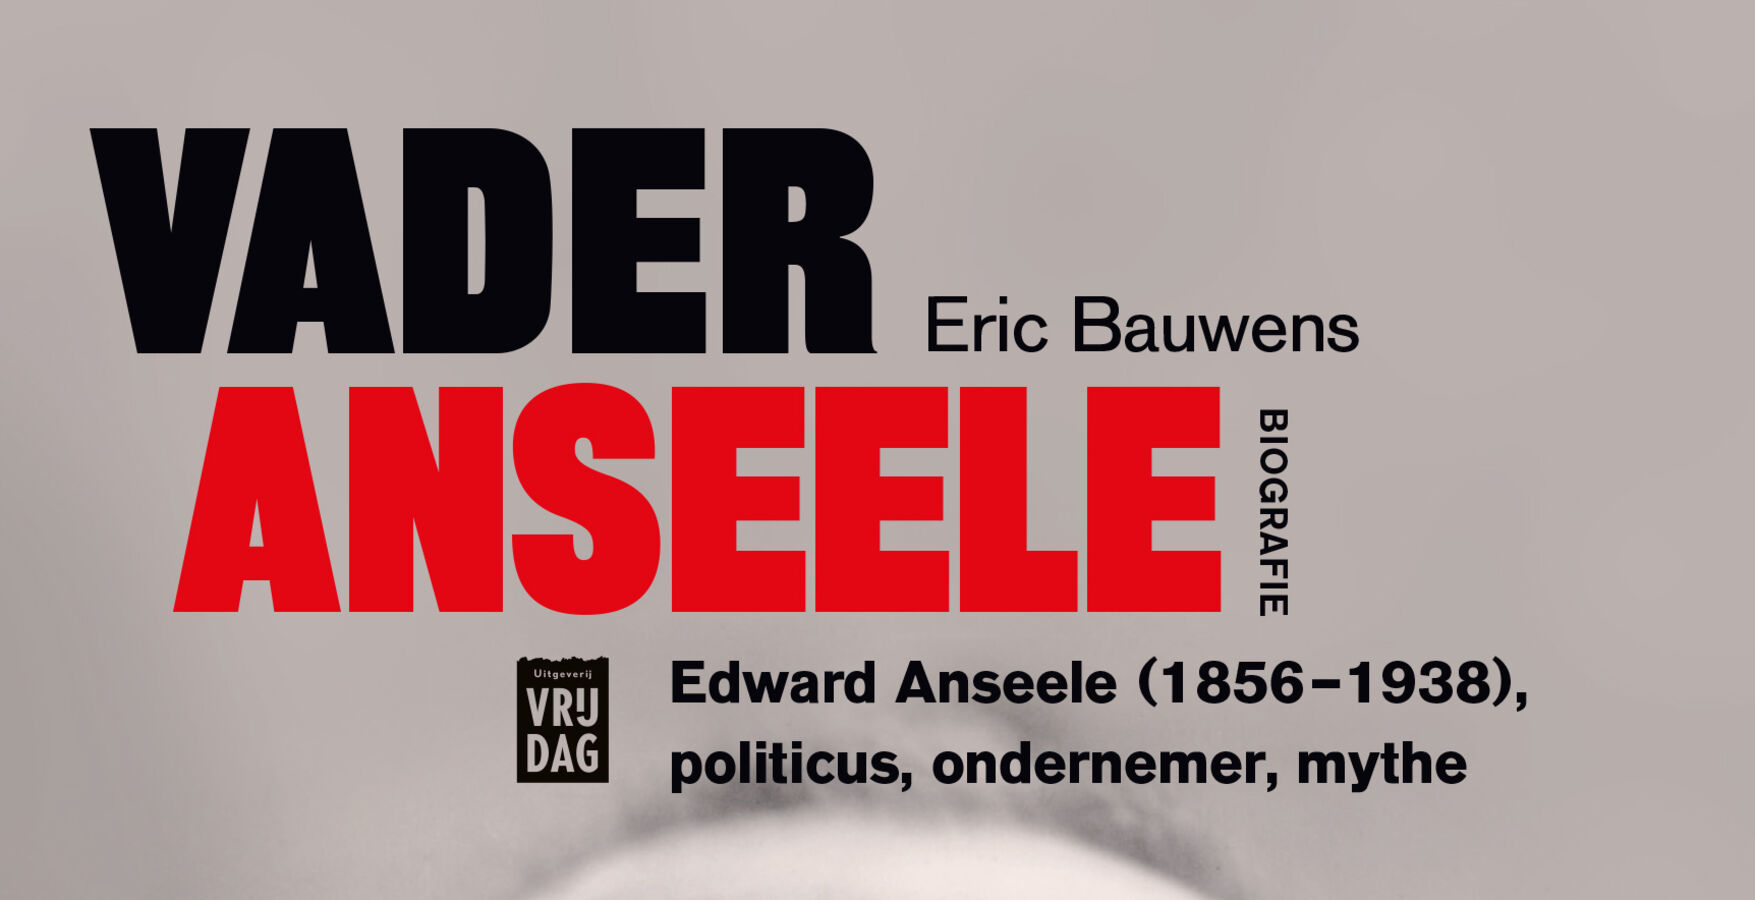 Vader Anseele - Eric Bauwens